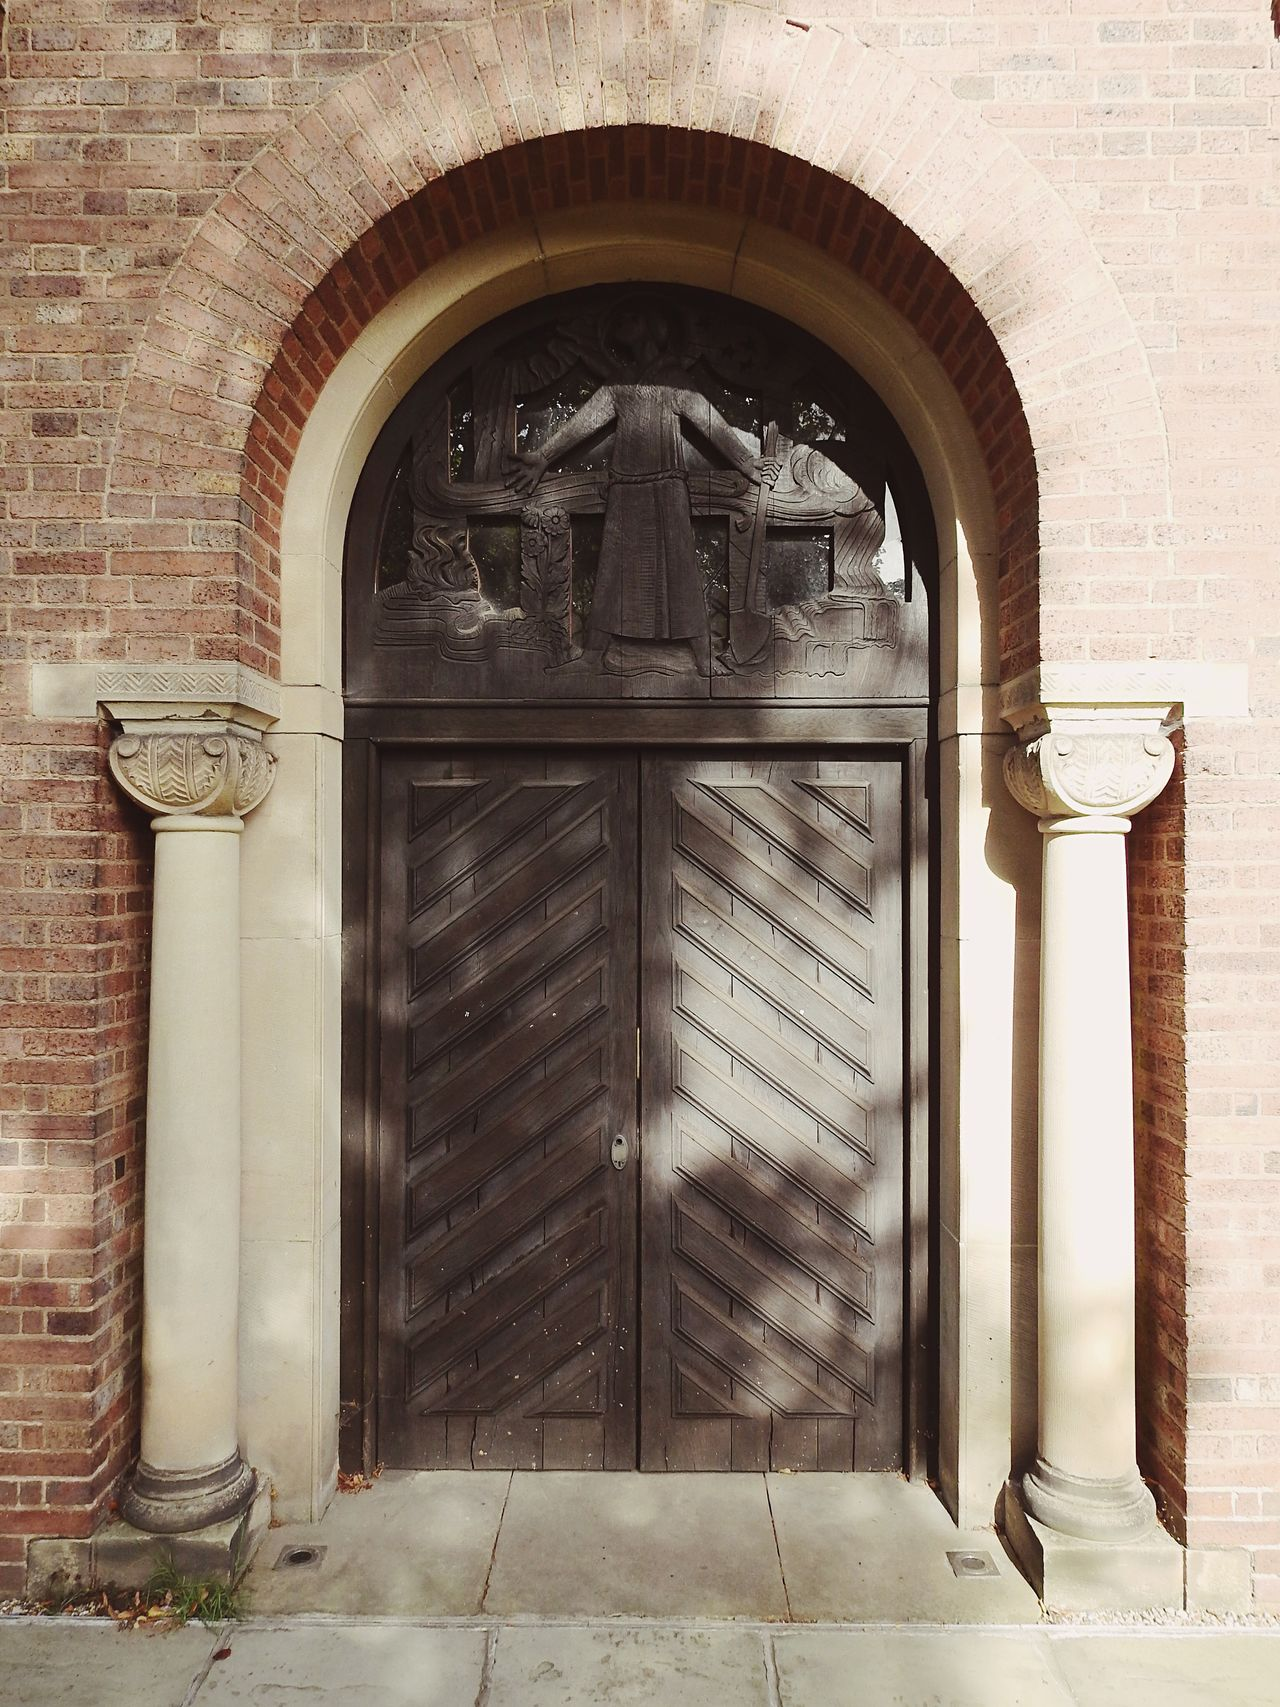 Architecture Built Structure Building Exterior Arch Door Entrance Day No People Outdoors